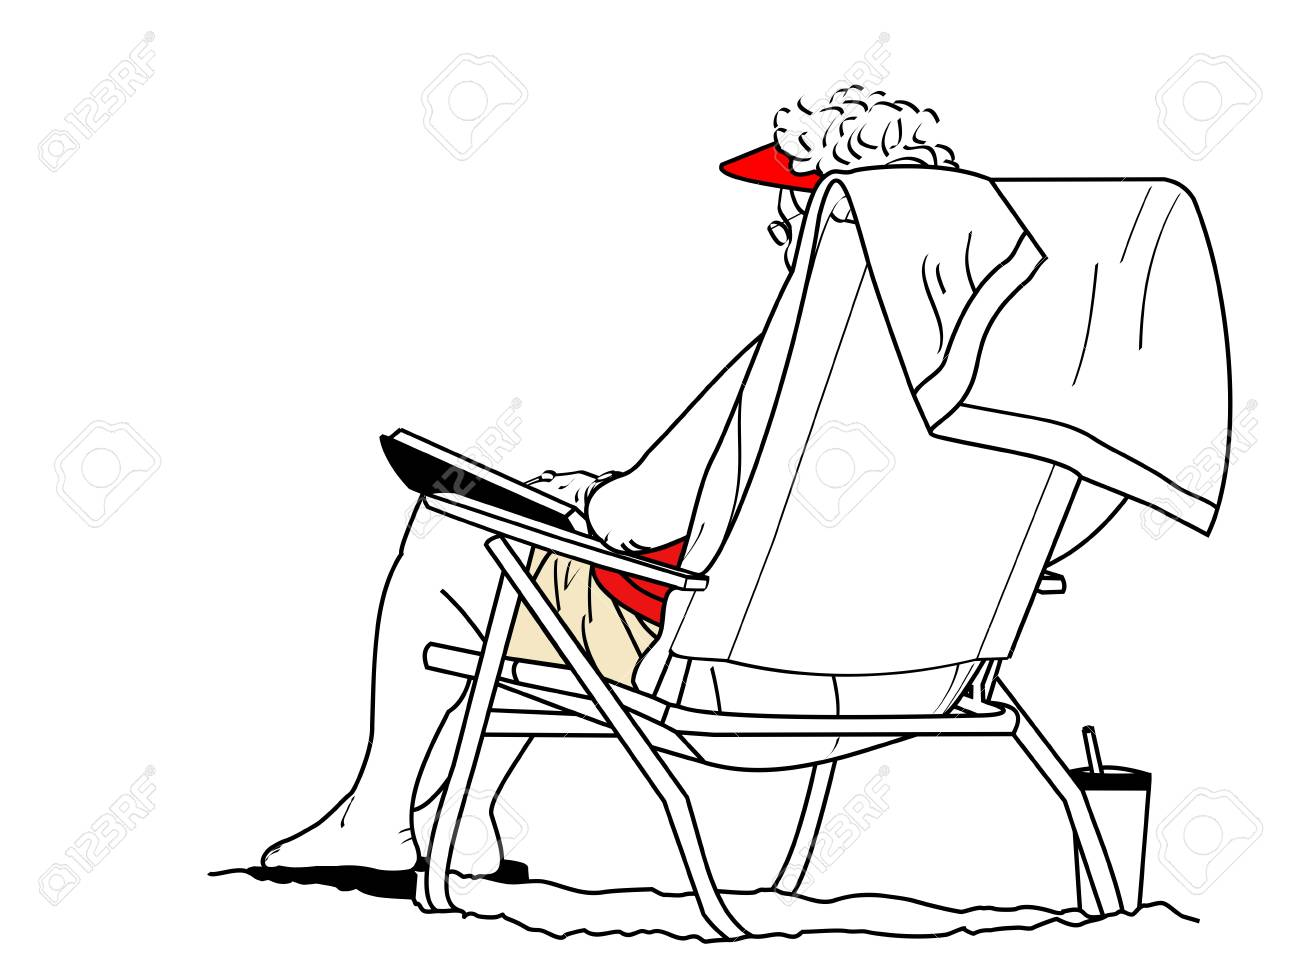 1300x974 Line Drawing Ofn Older Woman Sitting In Chair Reading